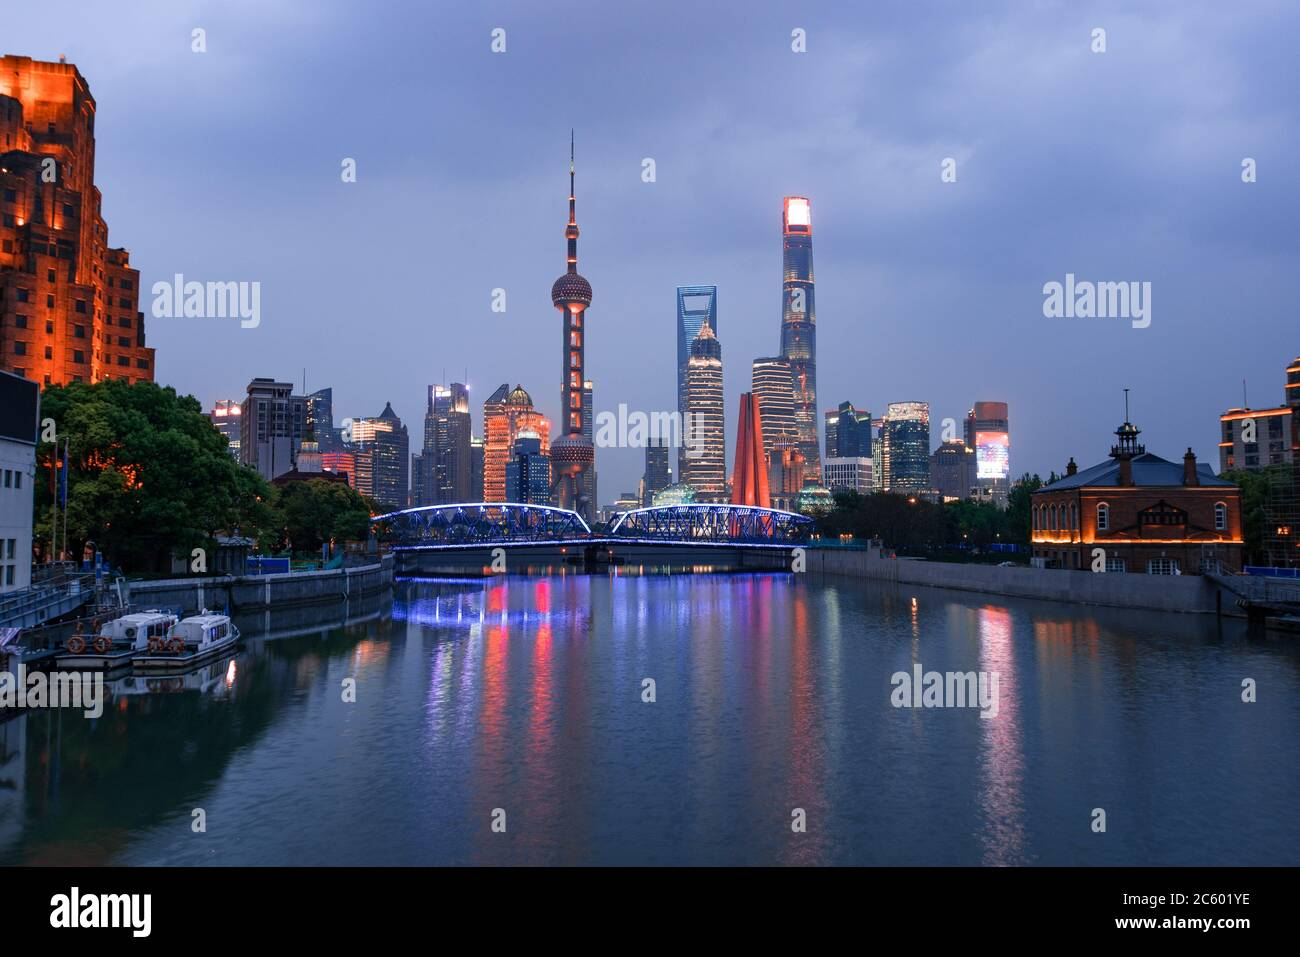 Night view of Waibaidu bridge and Lujiazui, the landmarks of Shanghai, China, with reflection in front. Stock Photo